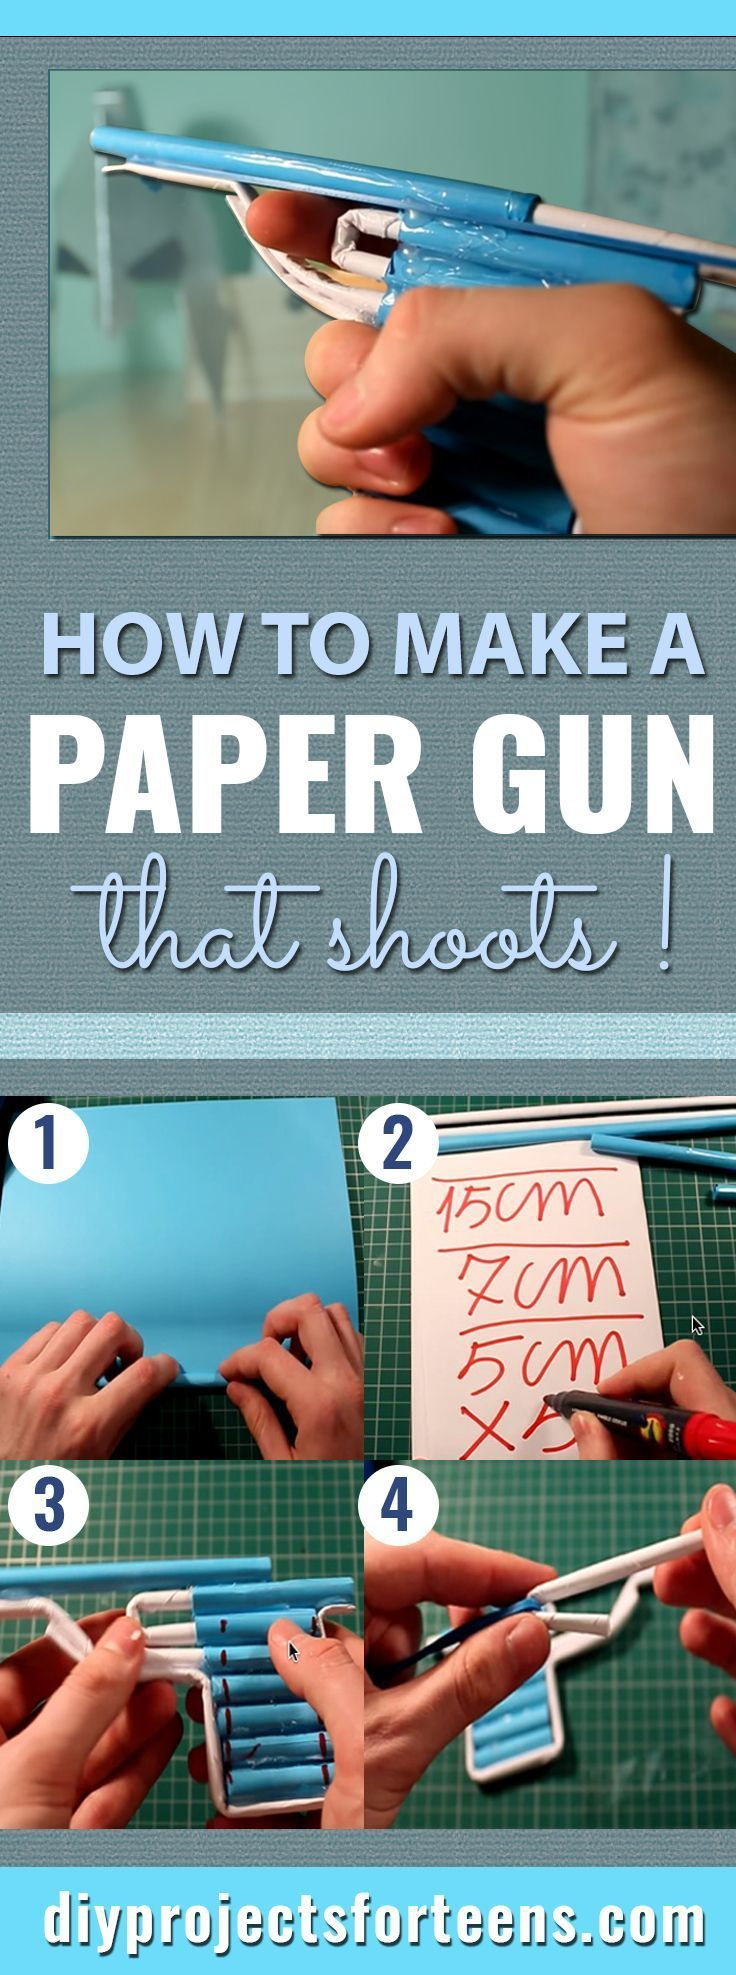 How To Make A Paper Gun That Shoots What Do When Bored For Teens At Home Diy ProjectsCrafts